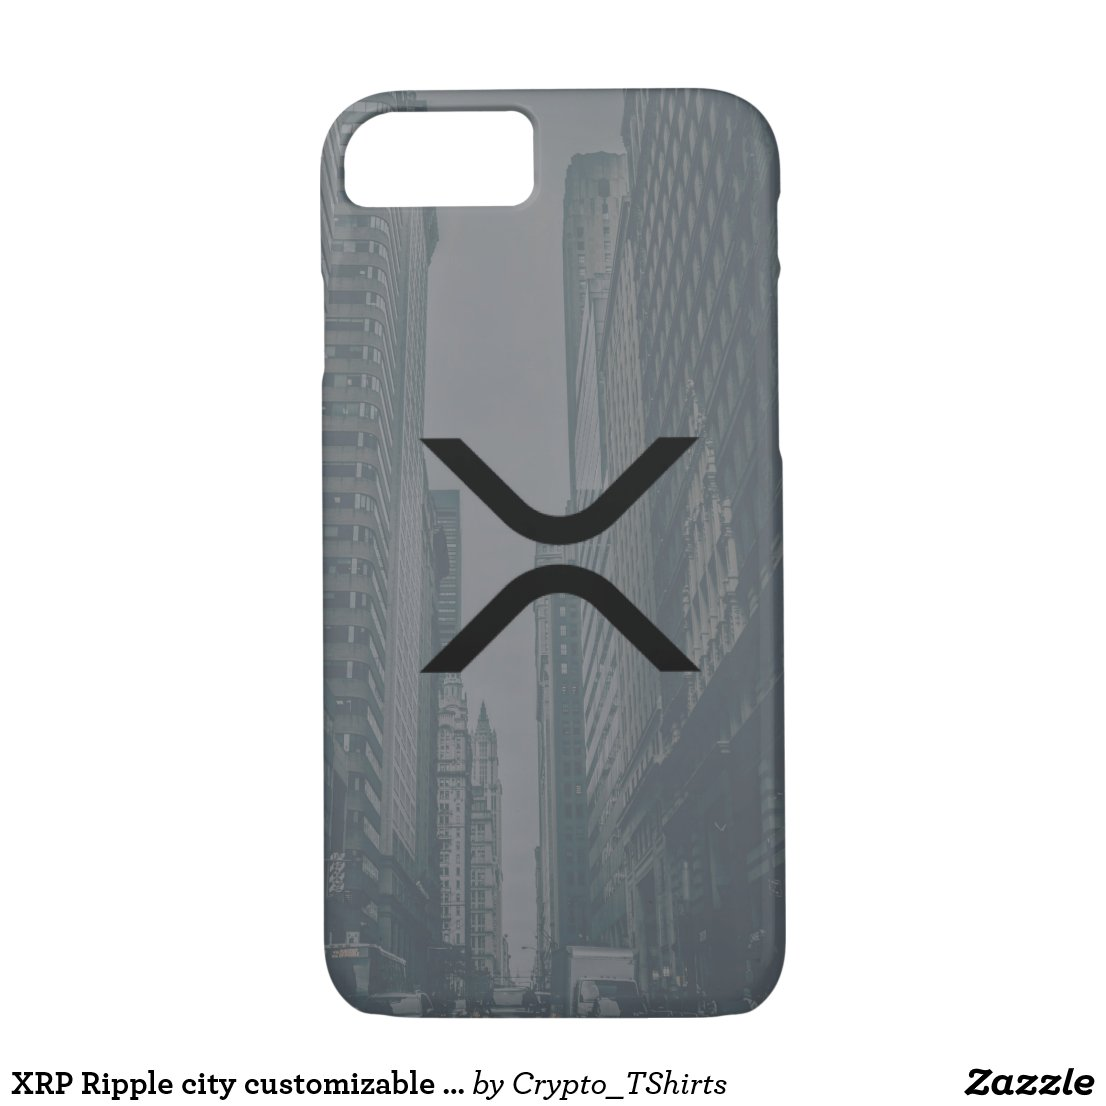 XRP Ripple city customizable phone case